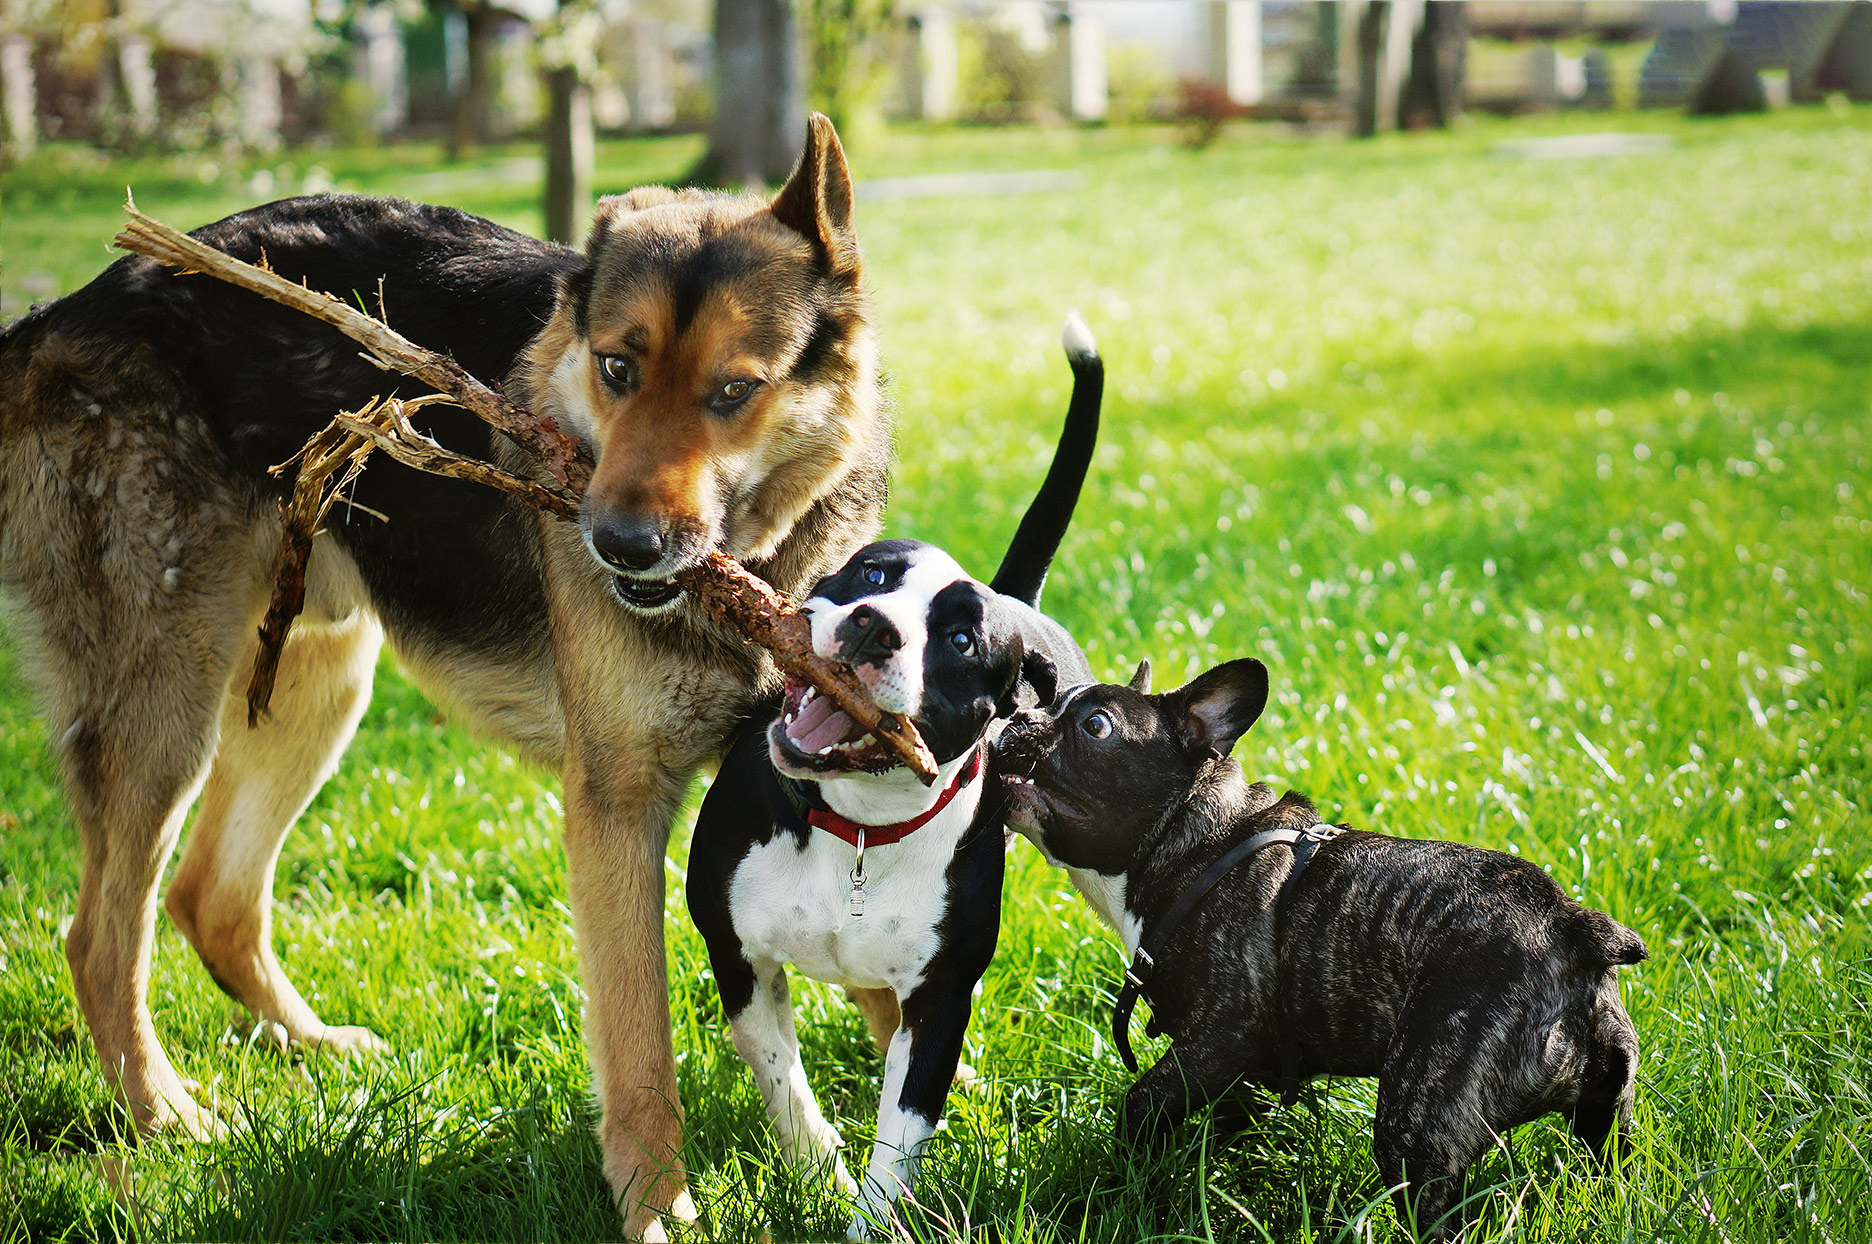 Three dogs playing with a stick at the park